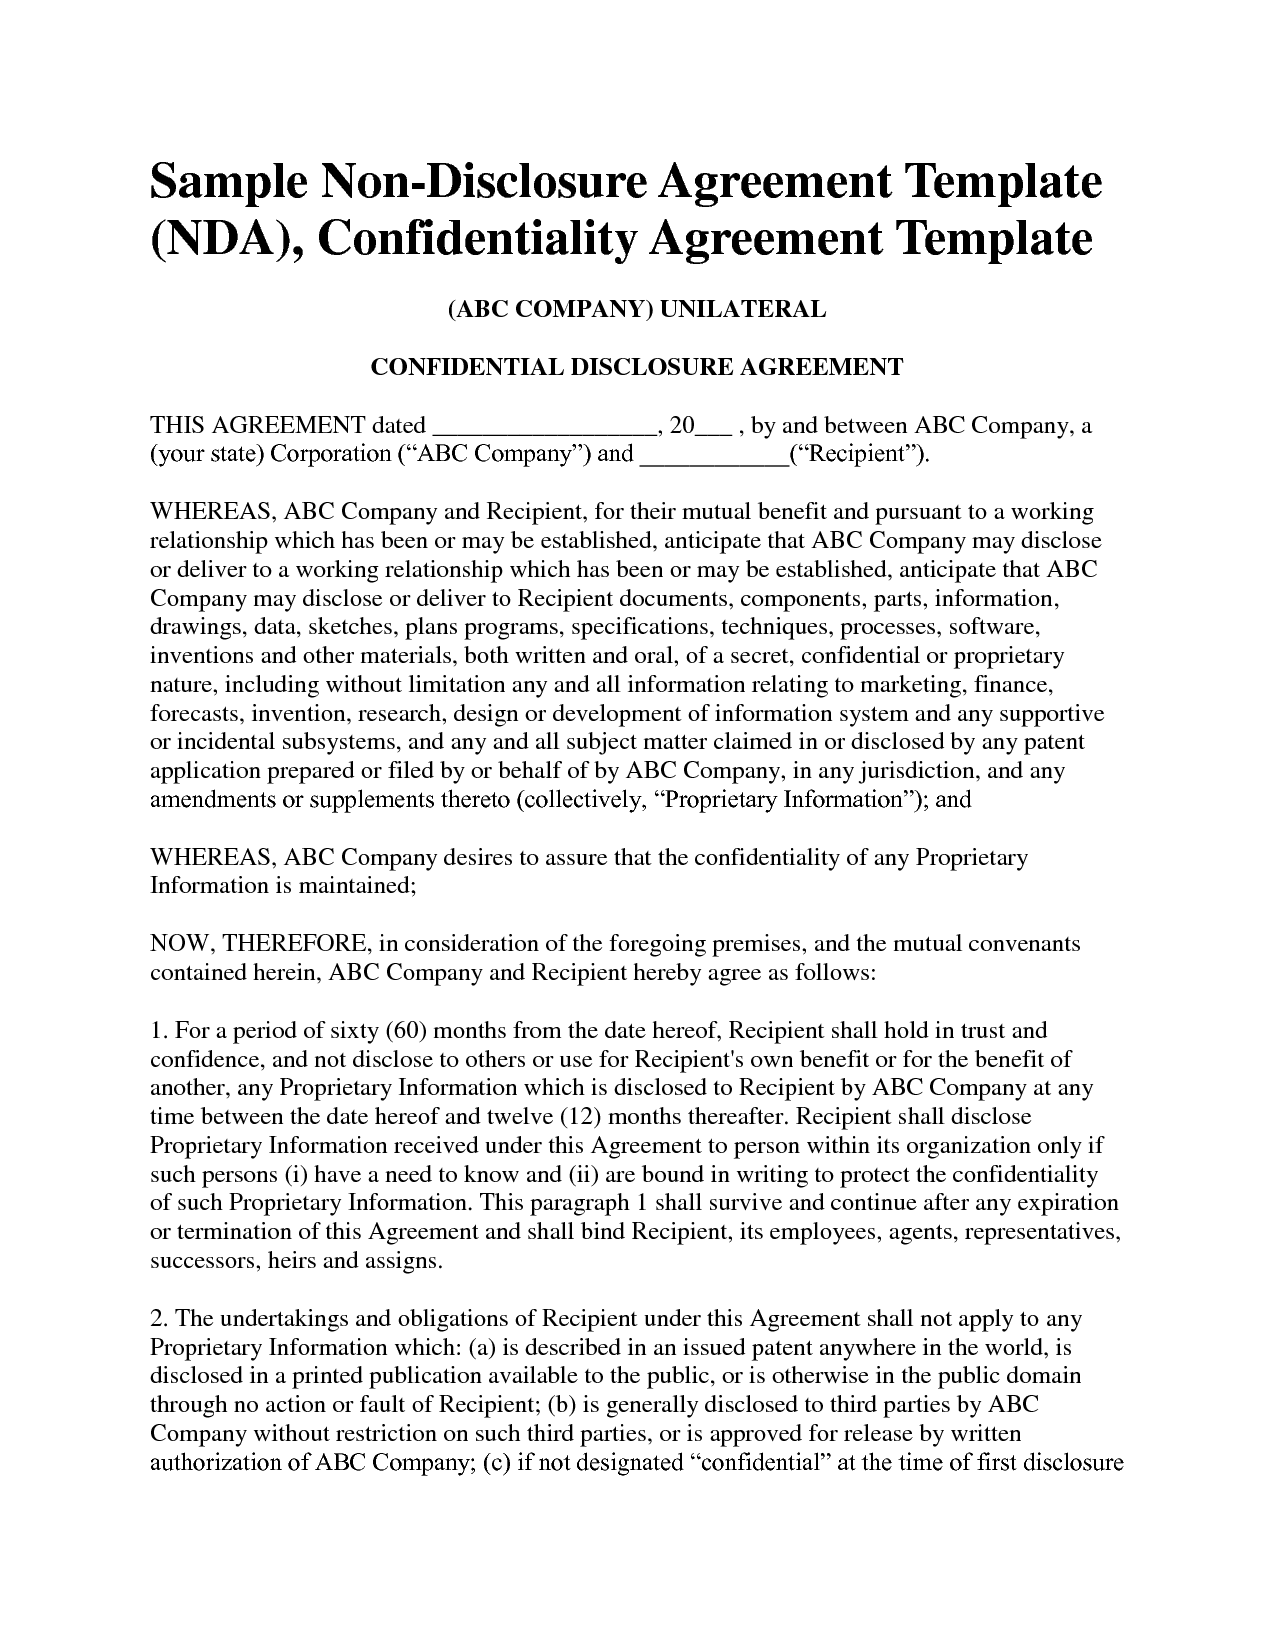 Non Disclosure Agreement Template Free Sample Nda Template Mvrsqrn - Confidentiality and nondisclosure agreement template